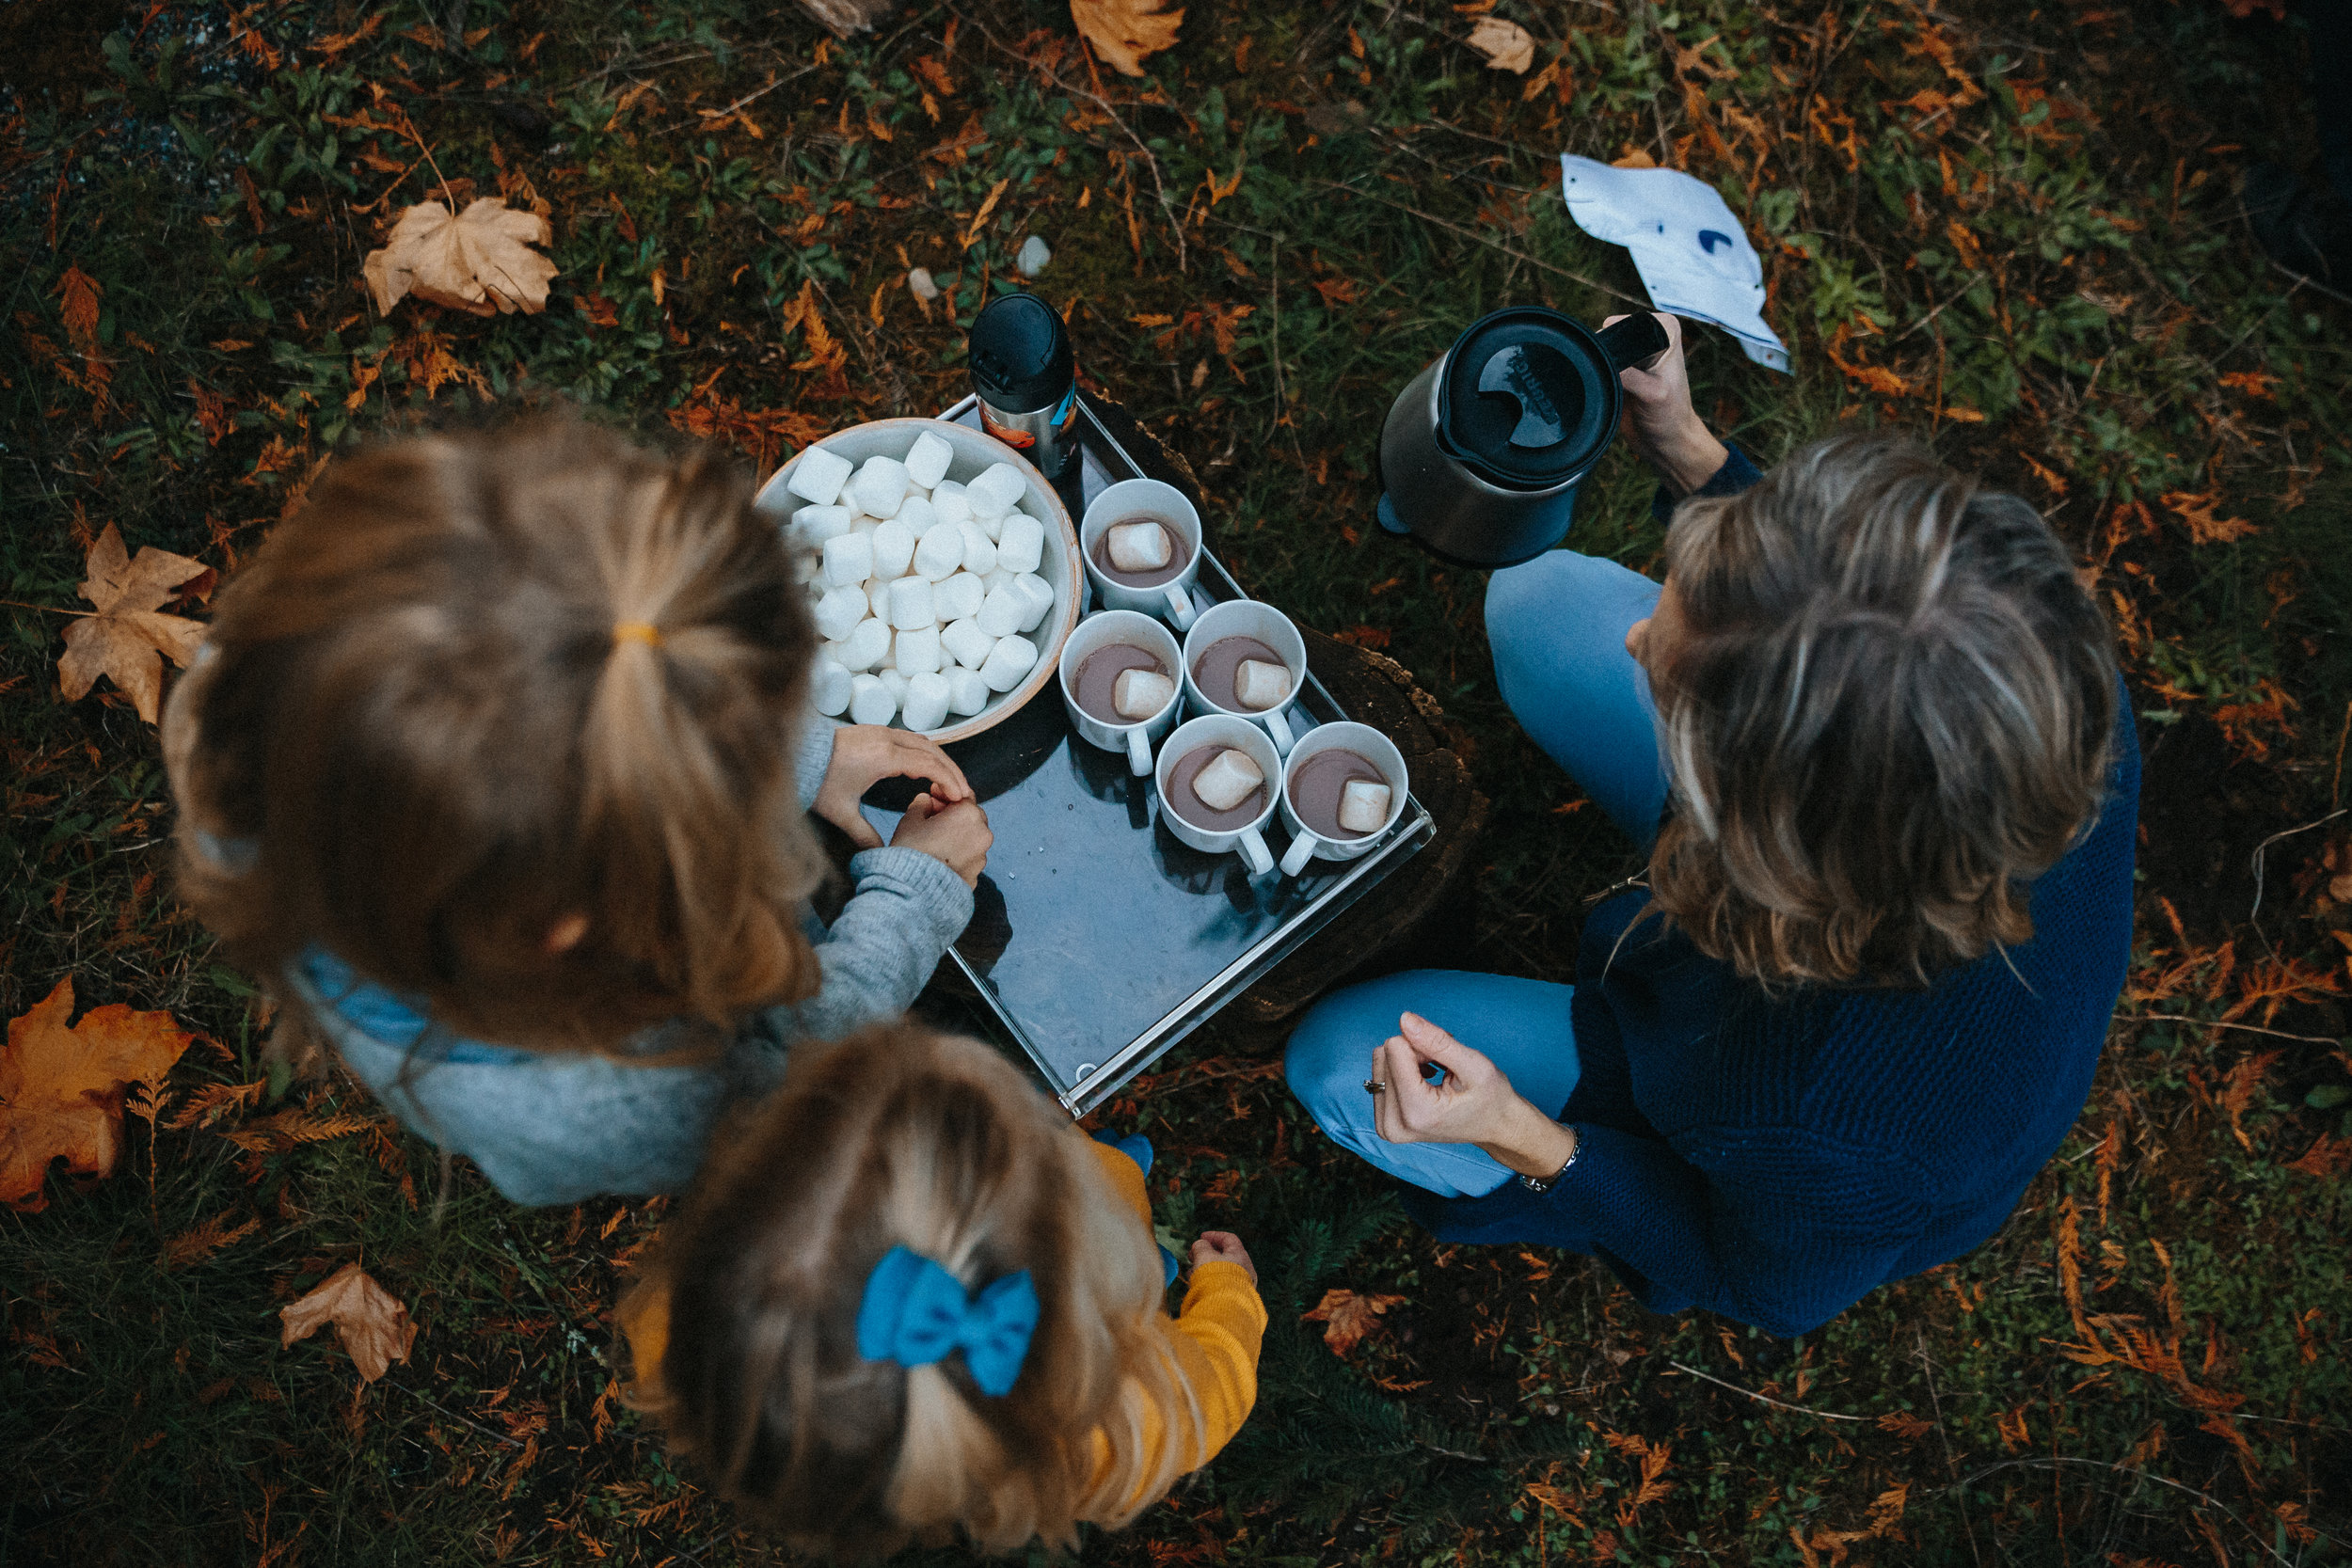 Hot chocolate and marshmallow in fall. Backyard Family Roasting Marshmallows, 4 kids, navy blue, mustard yellow, jean . Real moments, real memories. sticky fingers, documentary lifestyle photography by Mimsical photography, Fraser Valley, British Columbia, Langley, Vancouver.